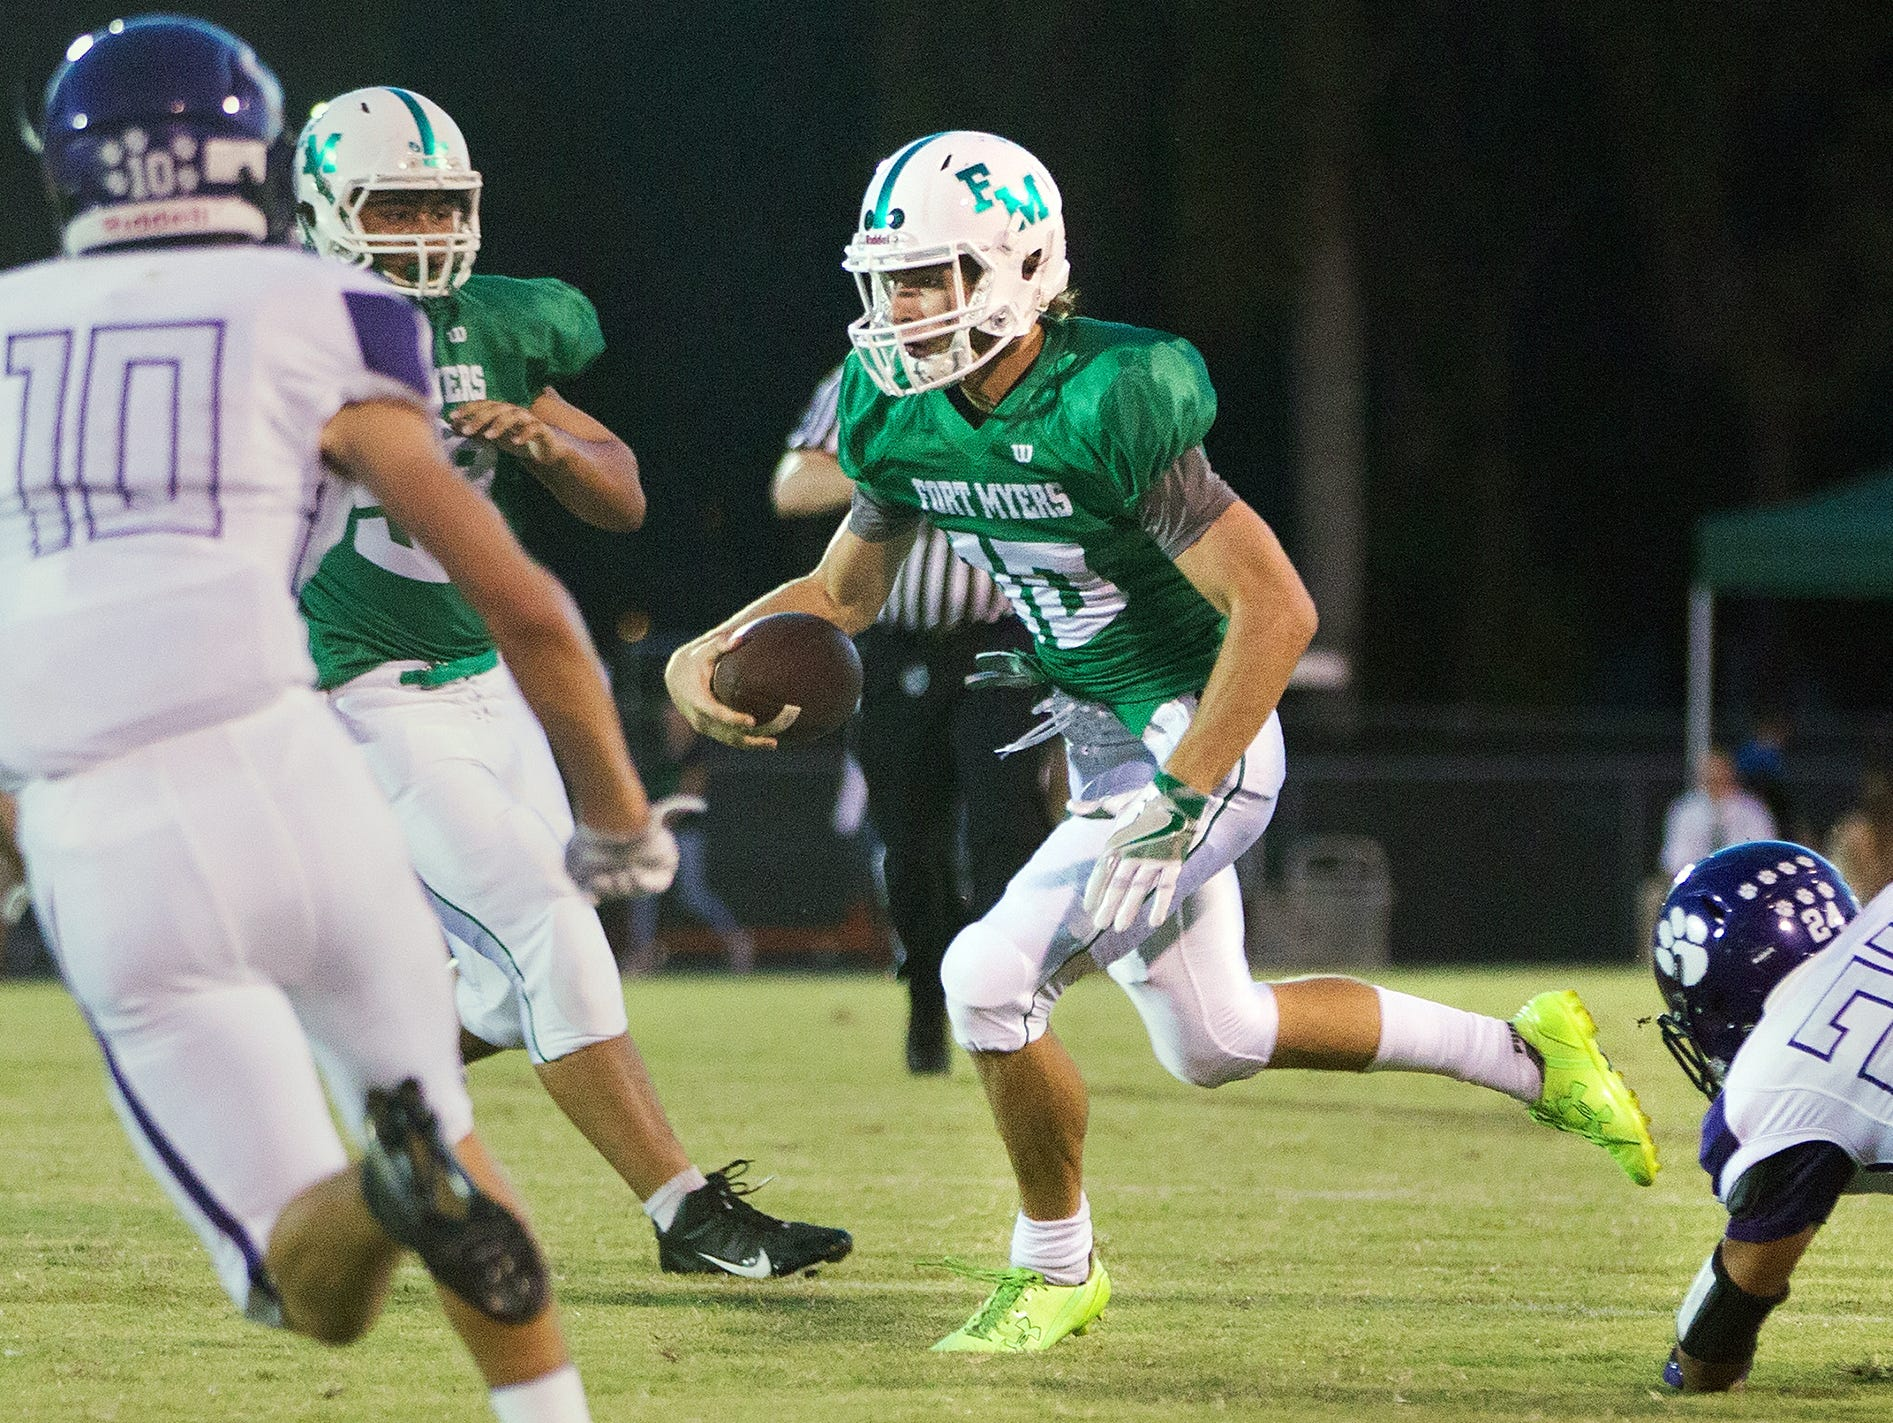 Fort Myers High School's Ben Stobaugh picks up a first down against Cypress Lake recently at Fort Myers High School.